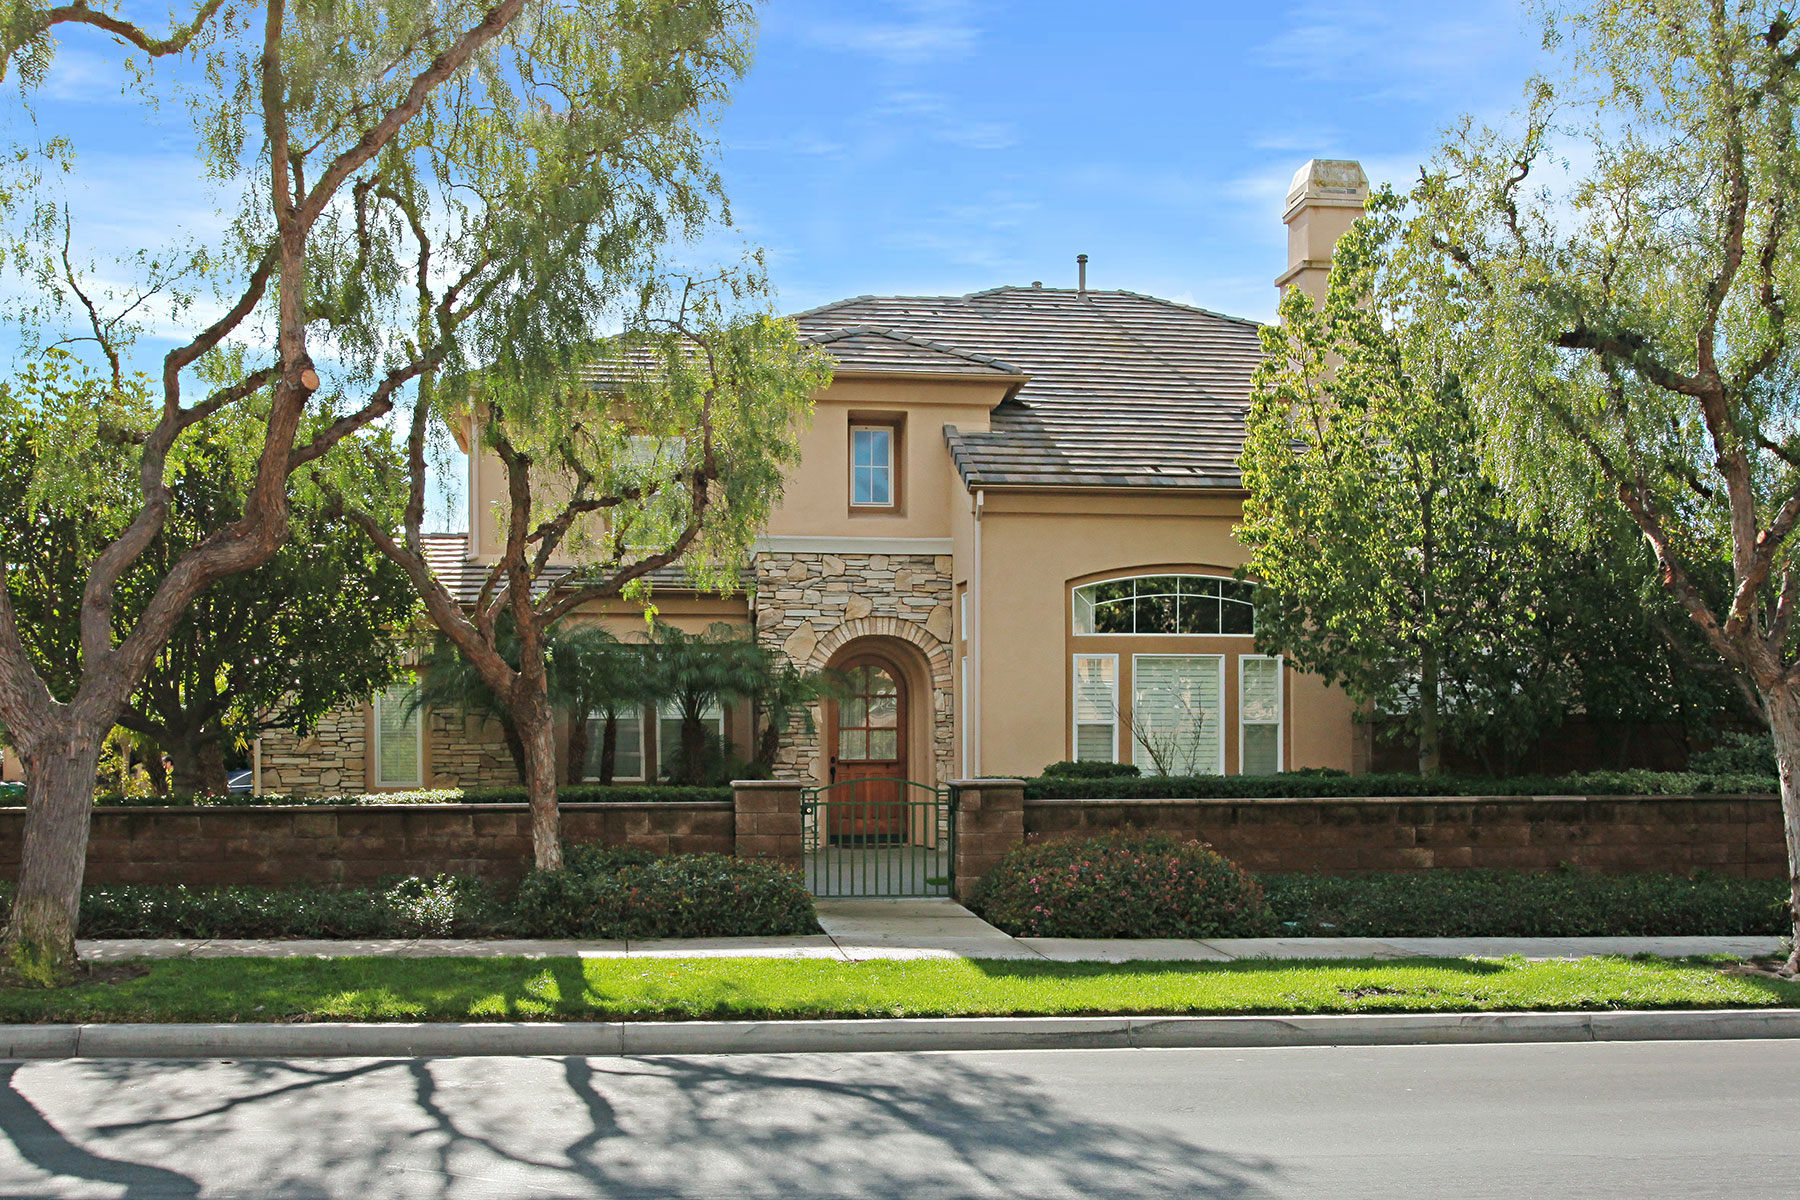 Single Family Home for Sale at 45 Cudahy Irvine, California 92602 United States